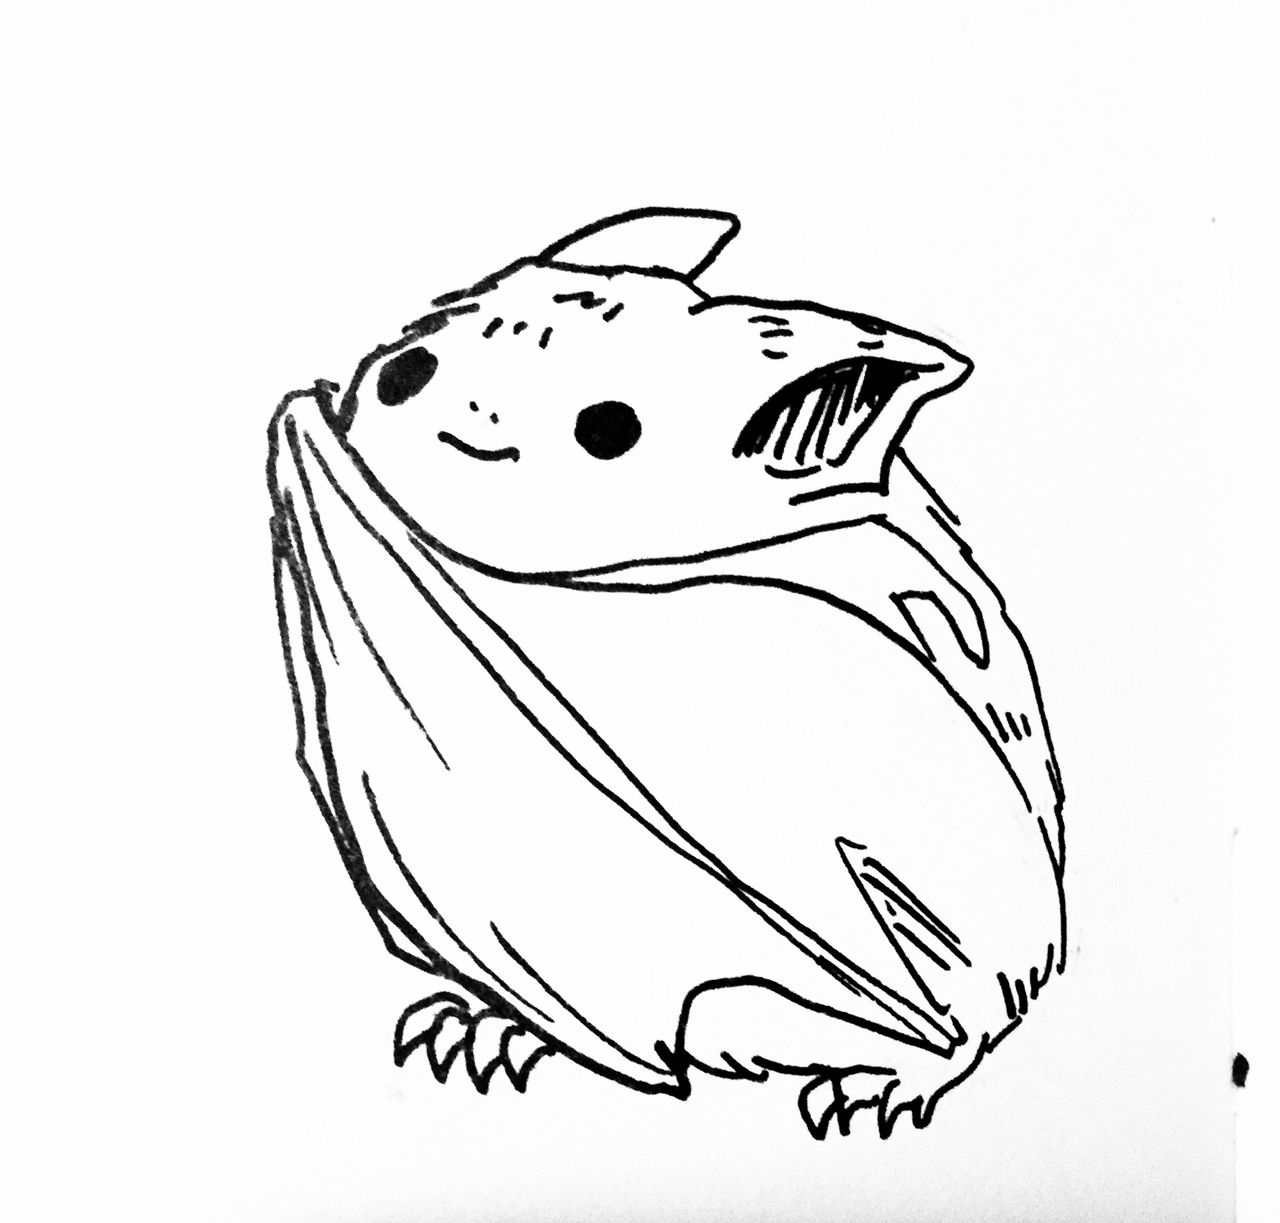 1280x1223 Save The Bats How Could We Not Save Something So Cute Ink